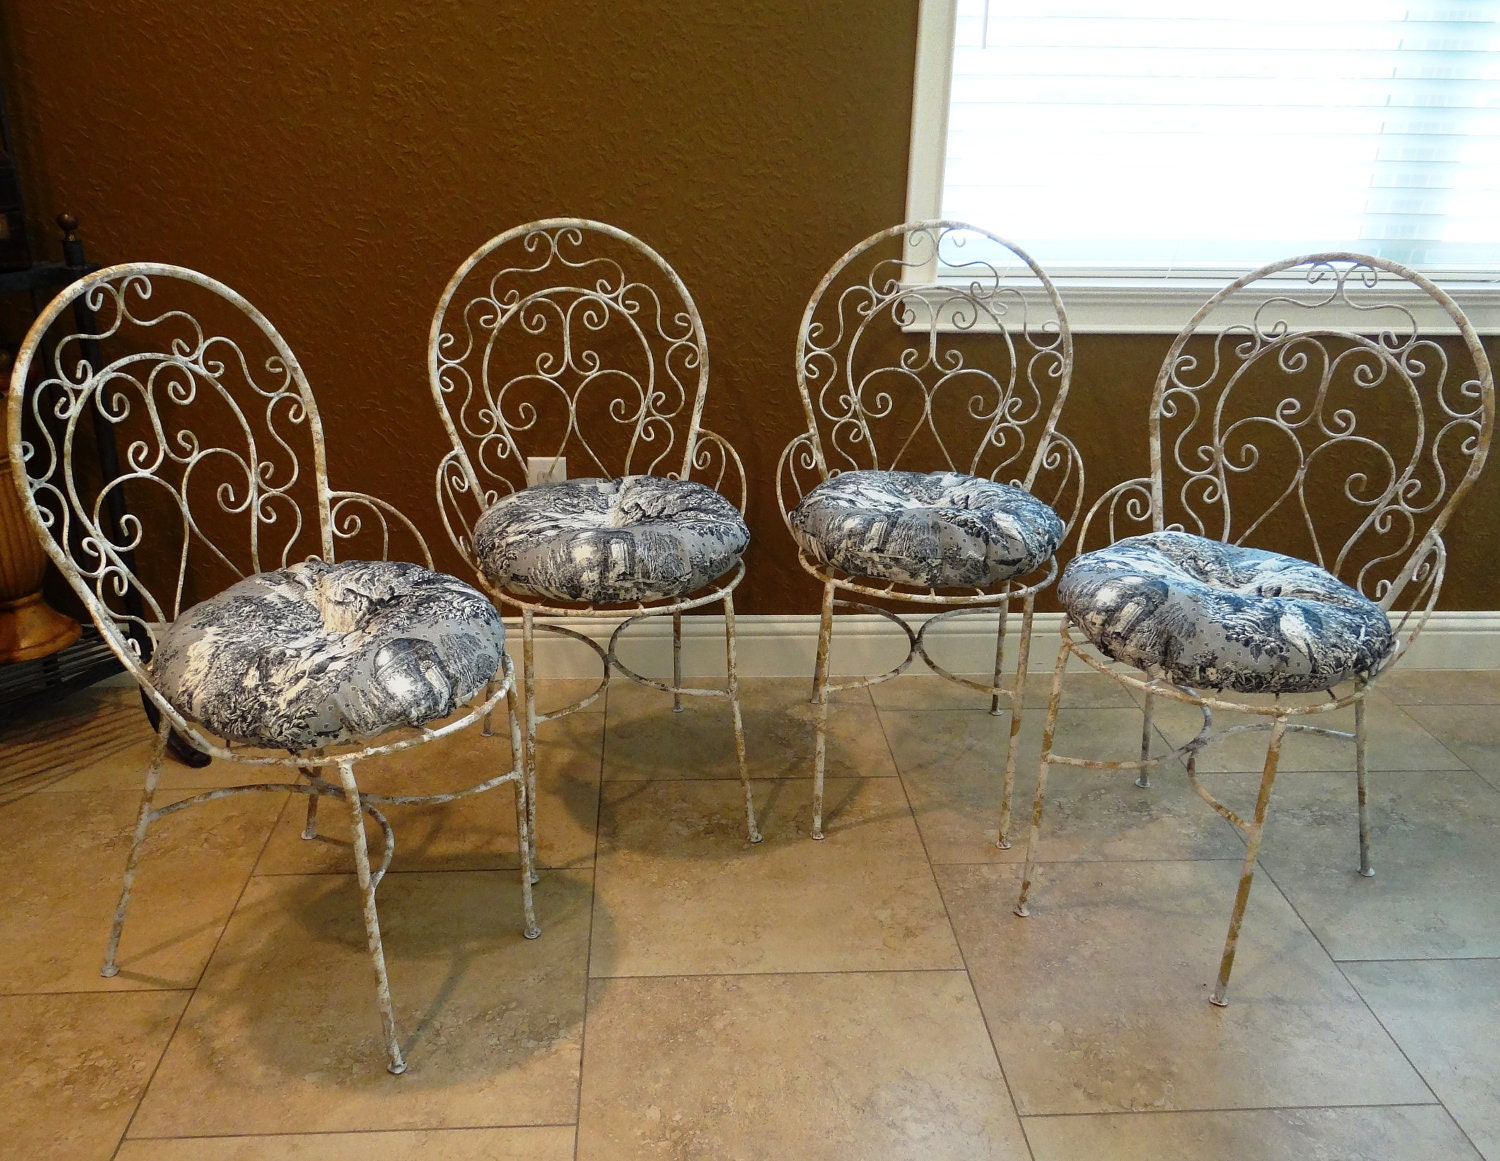 Refurbished Vintage Metal French Country Bistro By Didizines